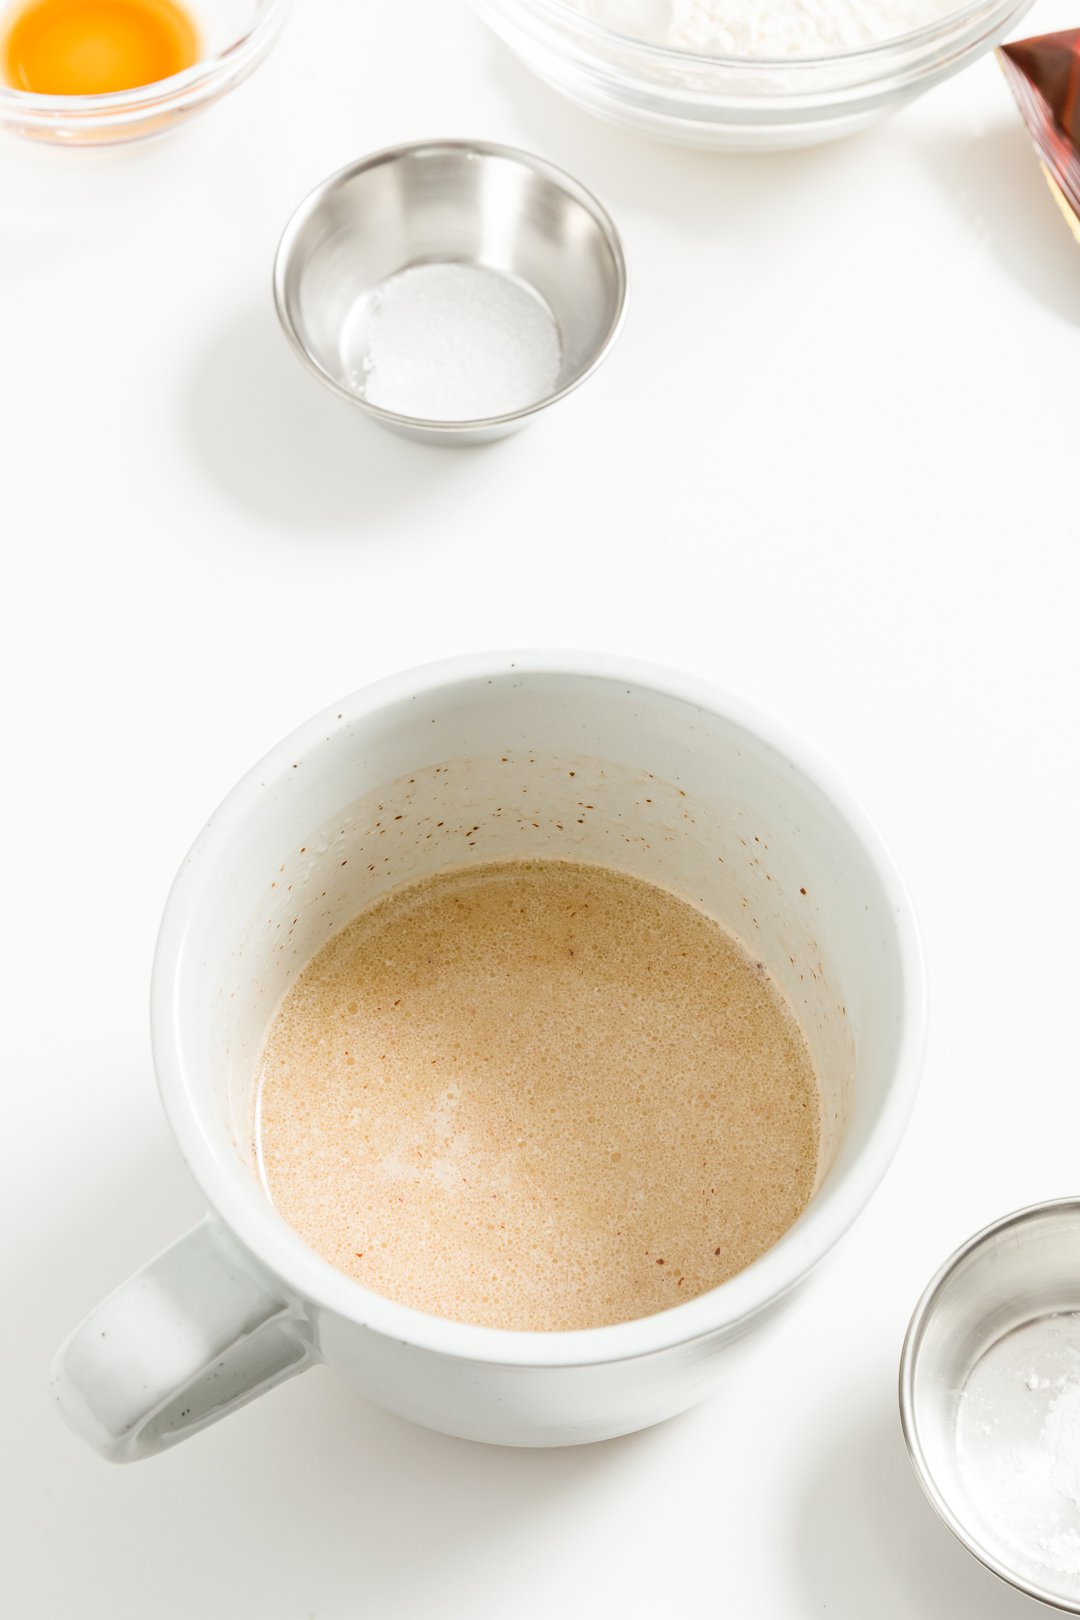 Melted butter, milk, and chocolate in a mug